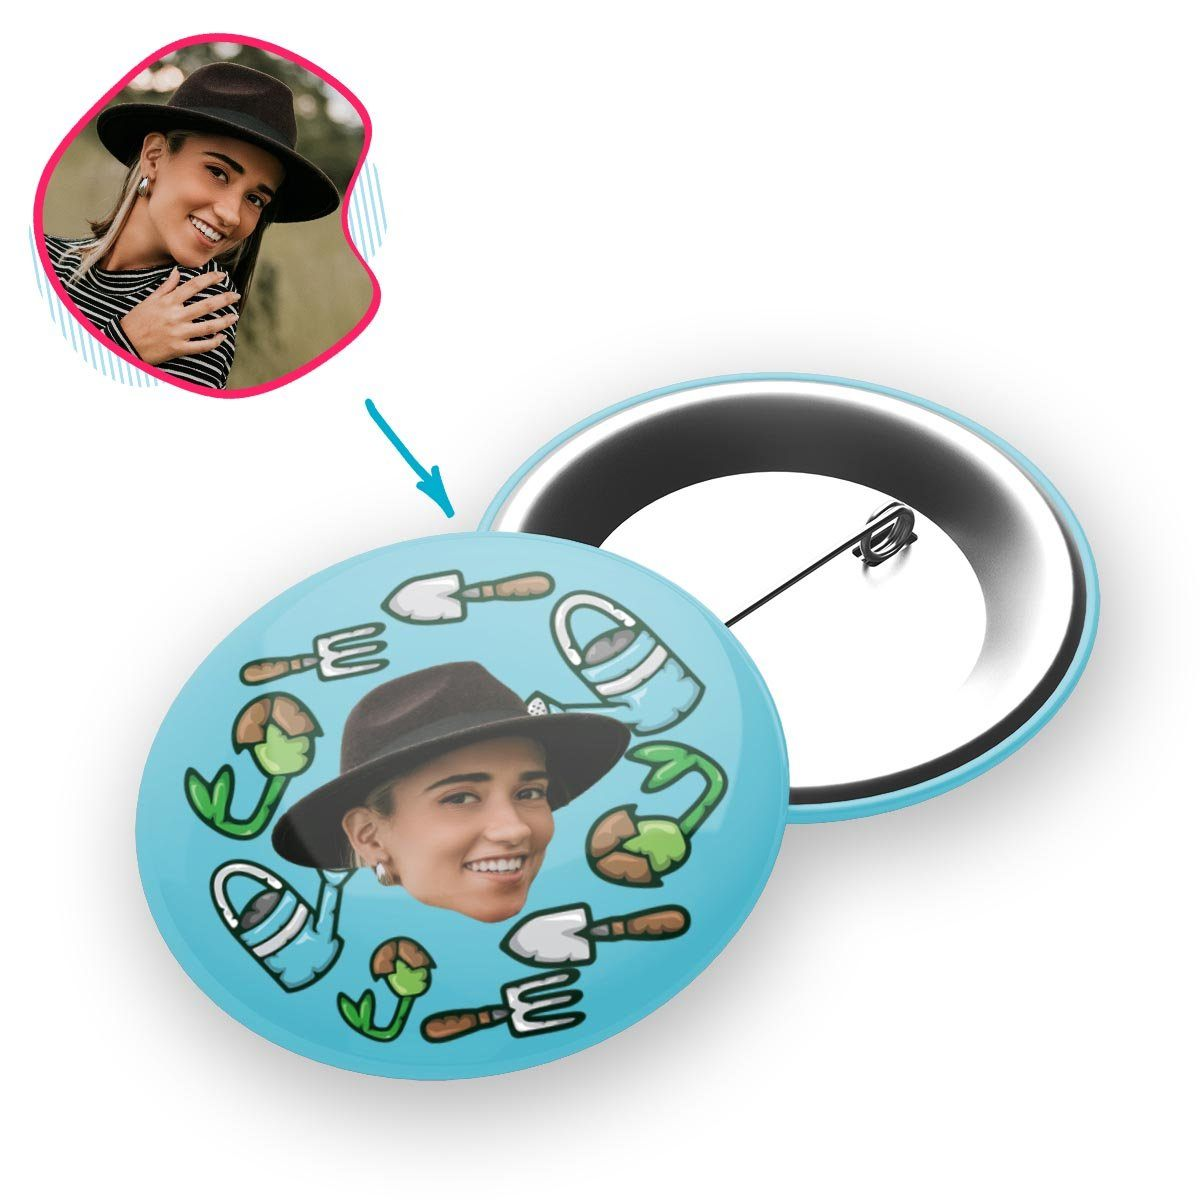 blue Gardening pin personalized with photo of face printed on it